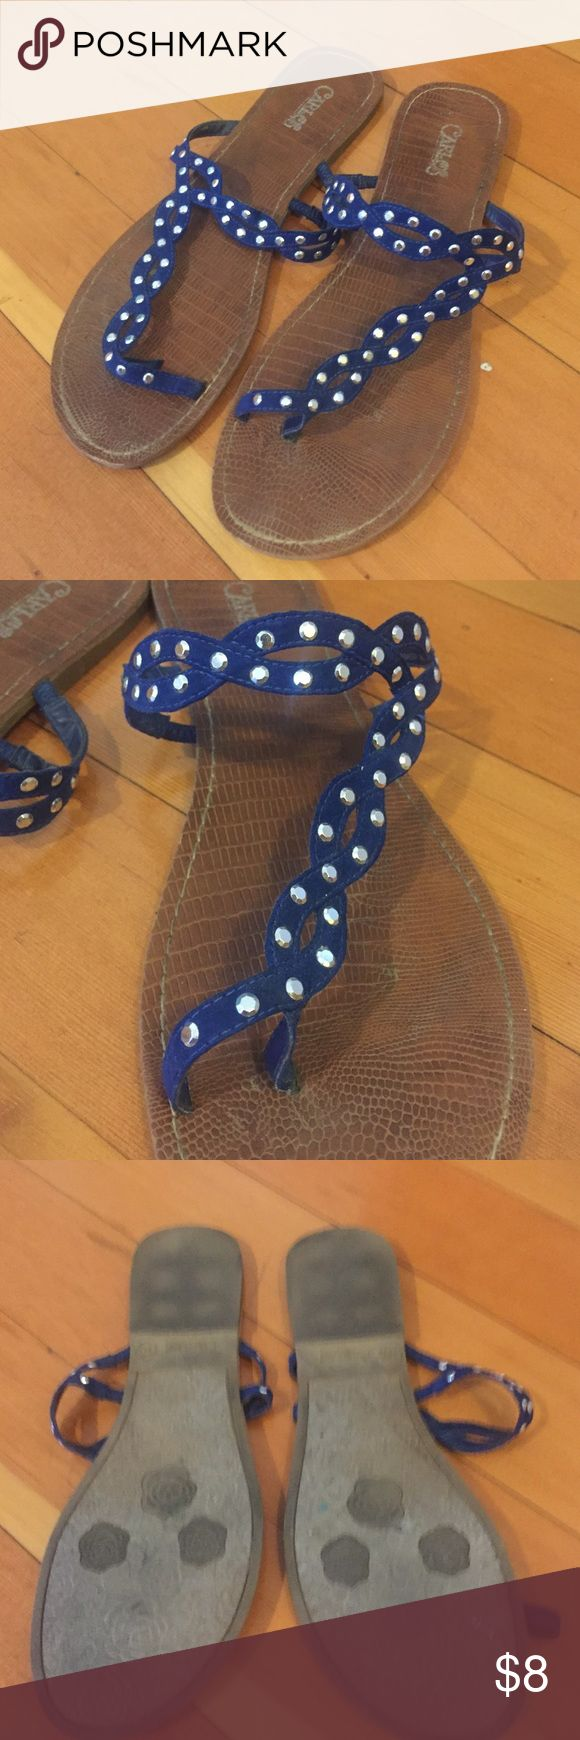 Carlos Santana toe ring sandals These blue toe ring sandals are embellished with silver studs for a cute appearance! Gentle worn still in good condition Carlos Santana Shoes Sandals